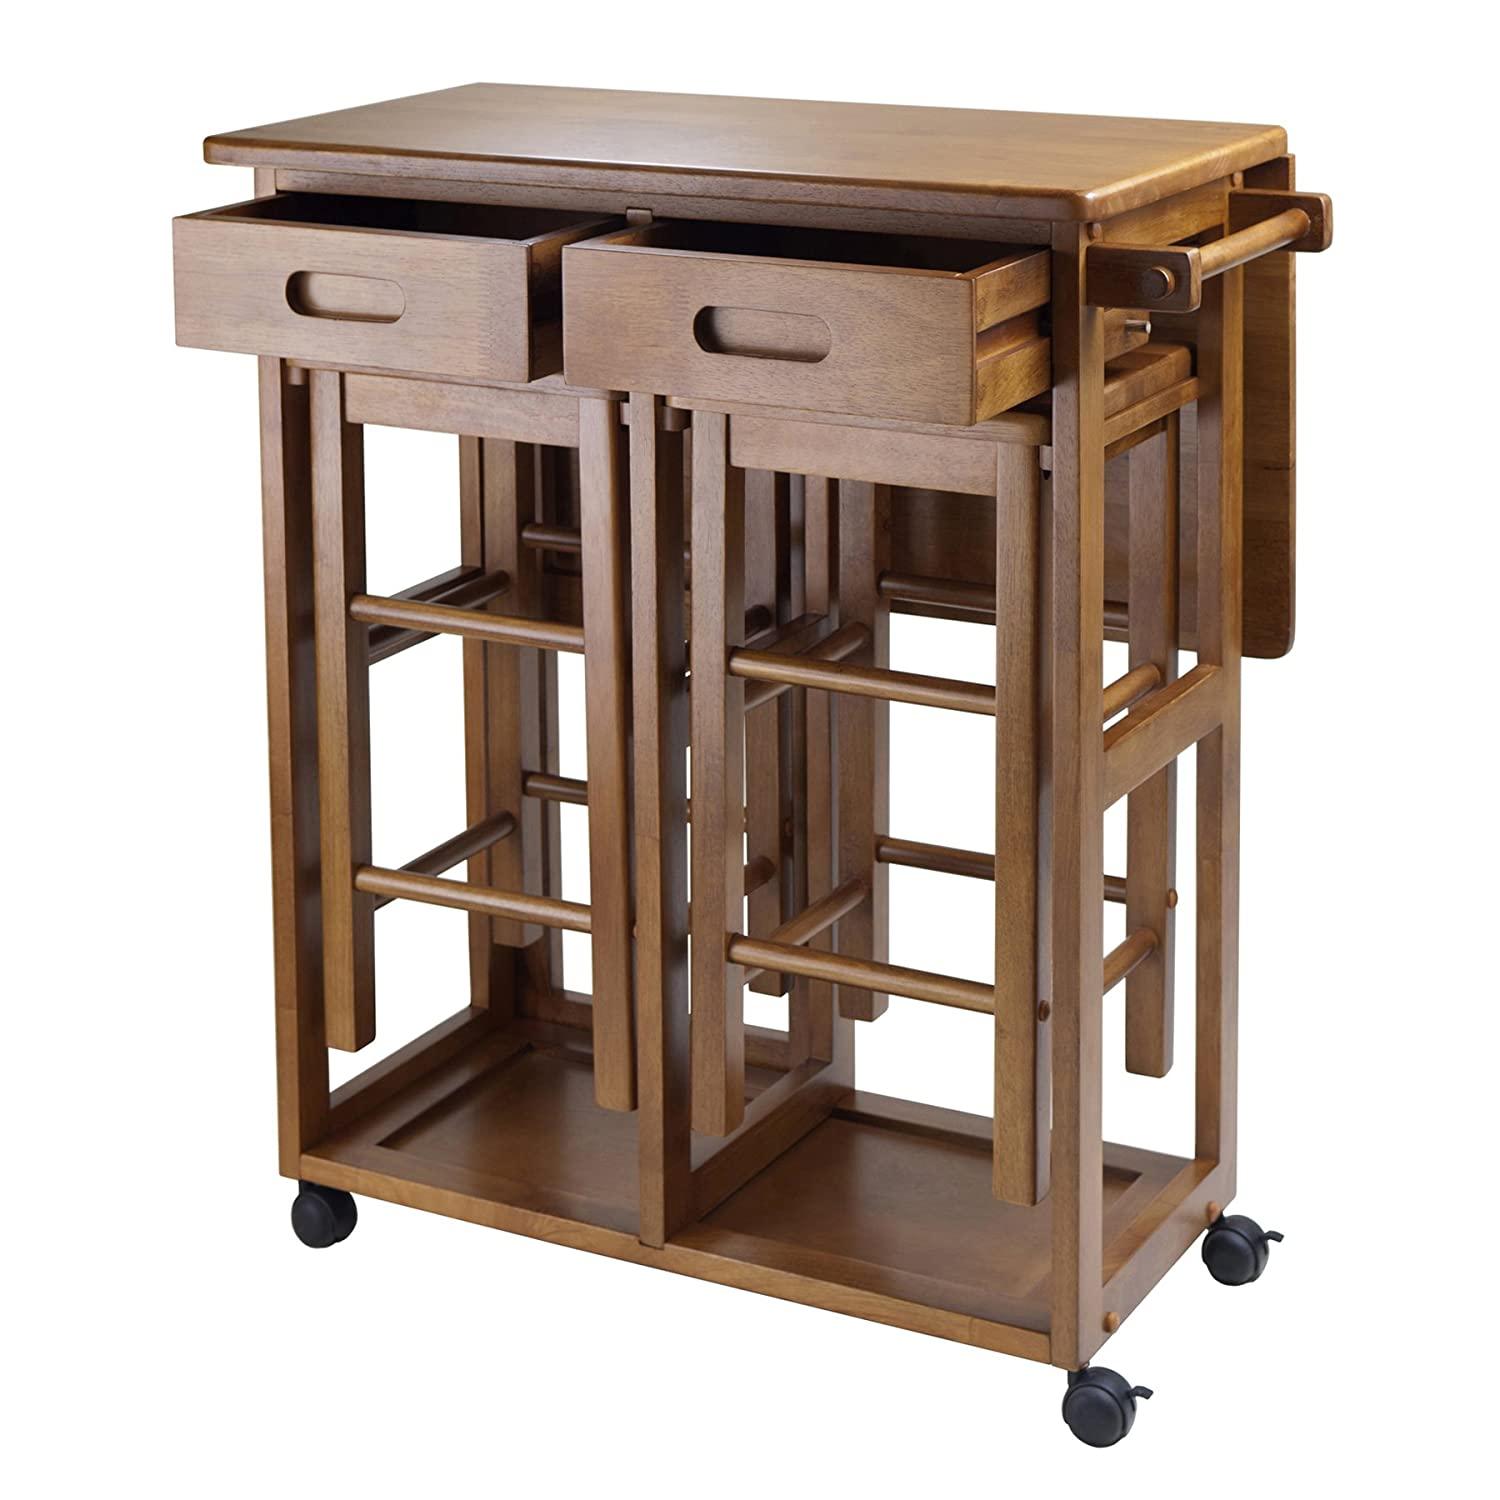 amazon com winsome space saver with 2 stools square kitchen amazon com winsome space saver with 2 stools square kitchen dining